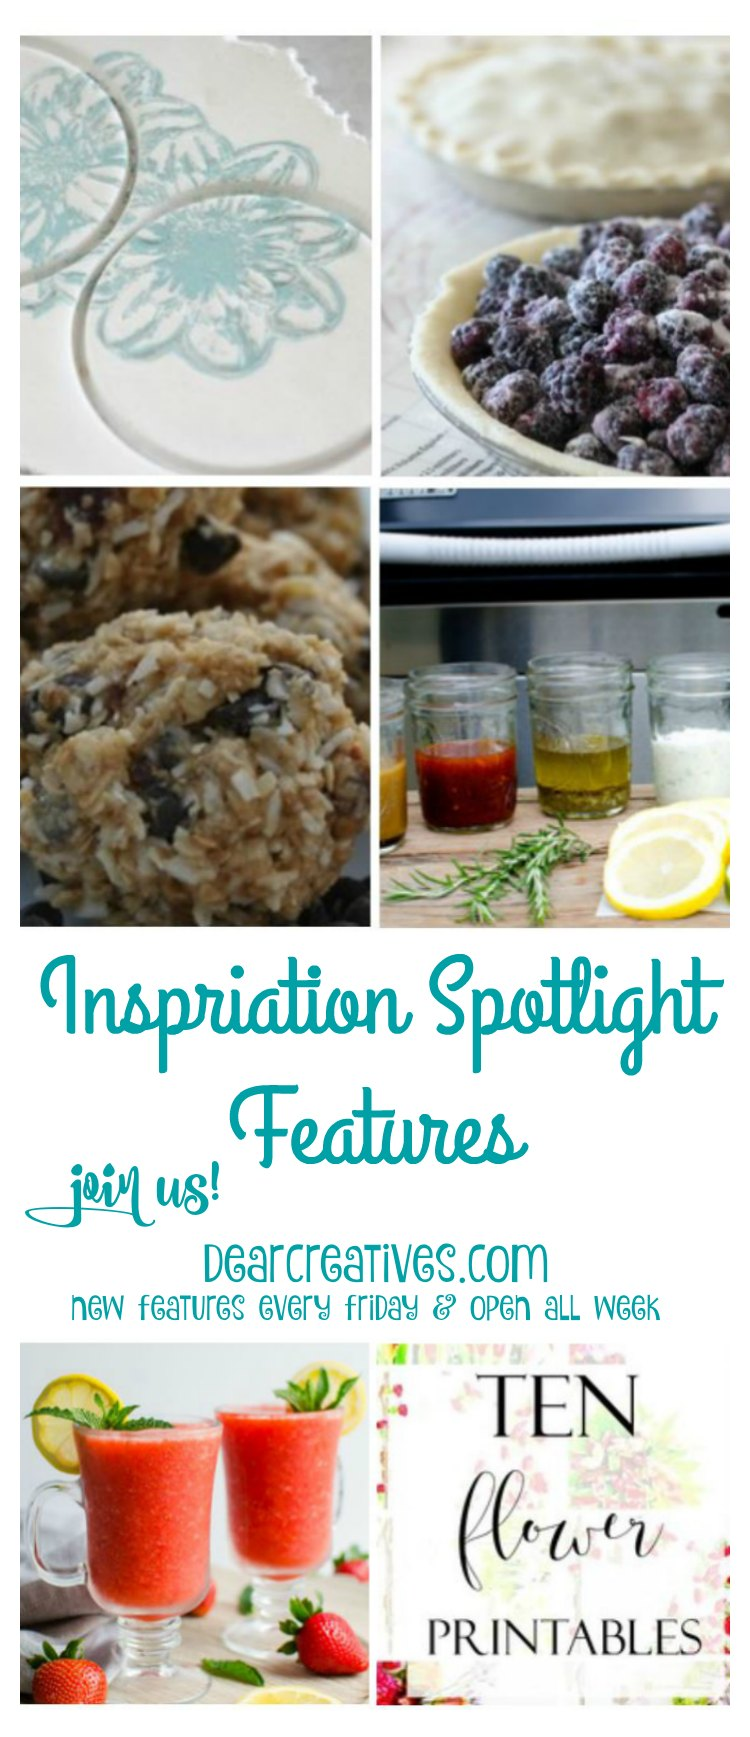 Linkup Party Inspiration Spotlight 196 DearCreatives.com | A blogging party where bloggers share their favorite crafts, DIY, beauty & fashion, blogging tips and recipes.